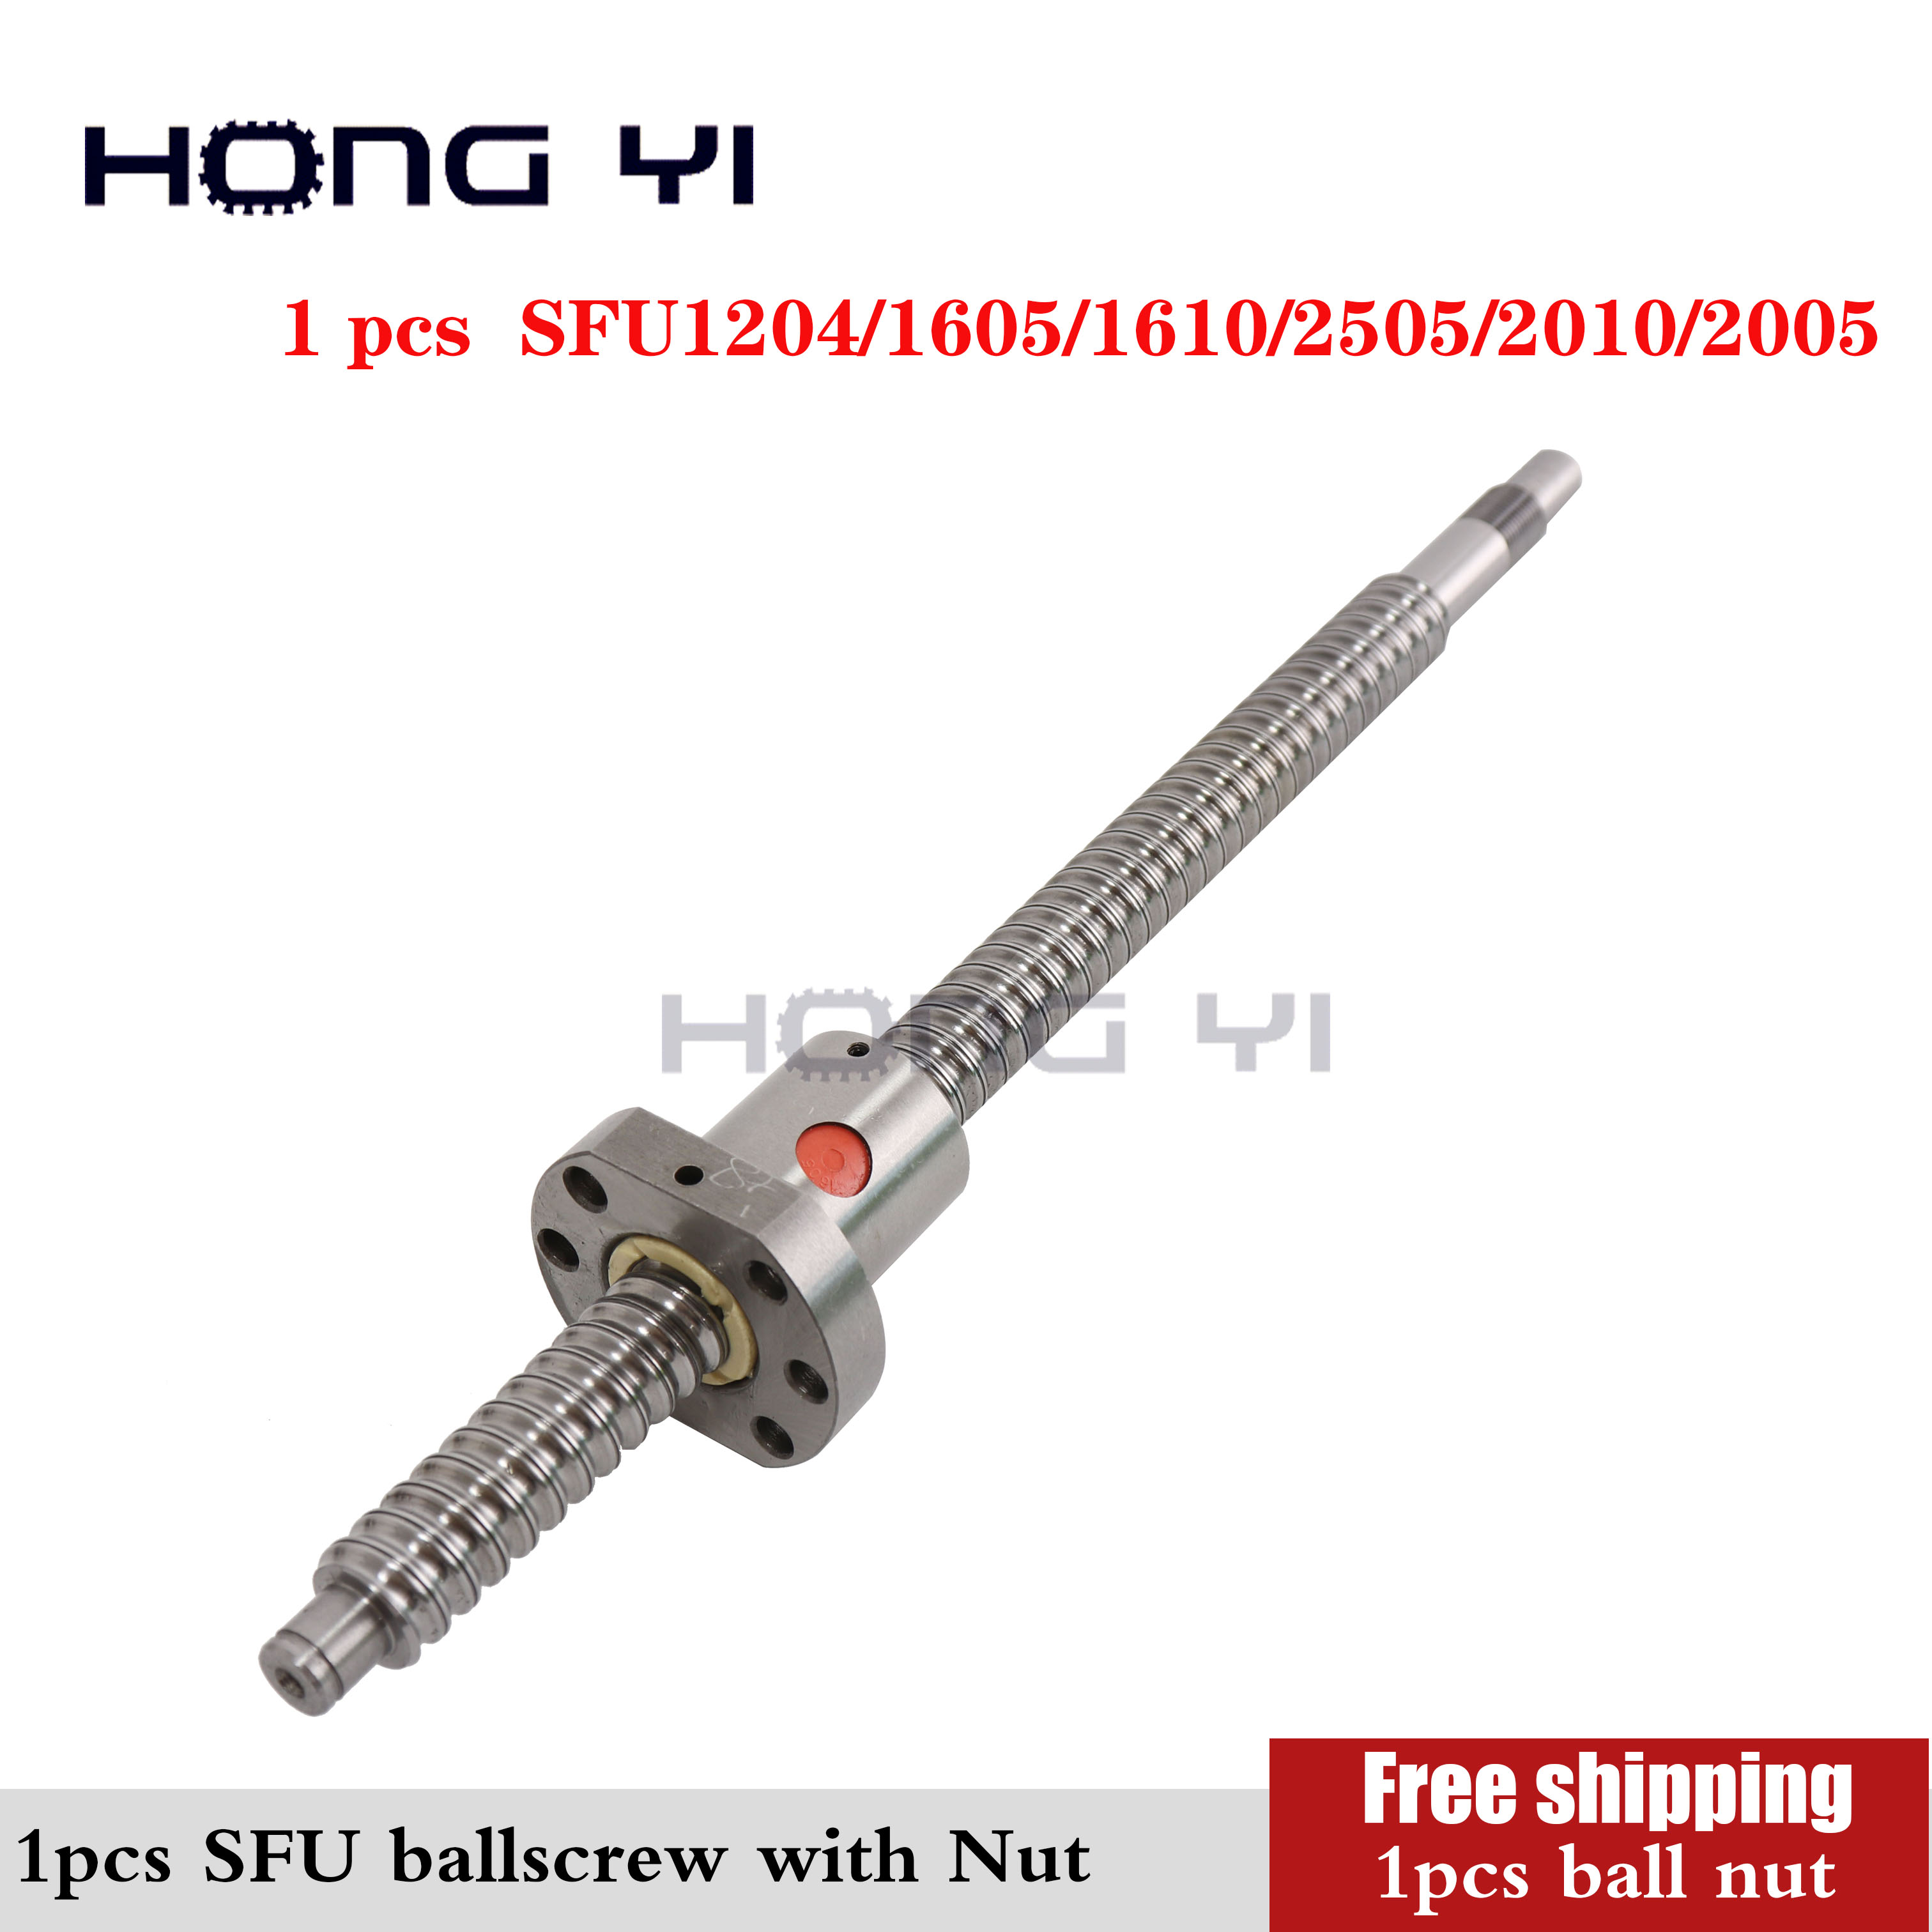 500mm UsongShine 16mm 1610 Ball Screw Rolled C7 ballscrew SFU1610 200-1150mm with one 1610 flange single ball nut for CNC parts